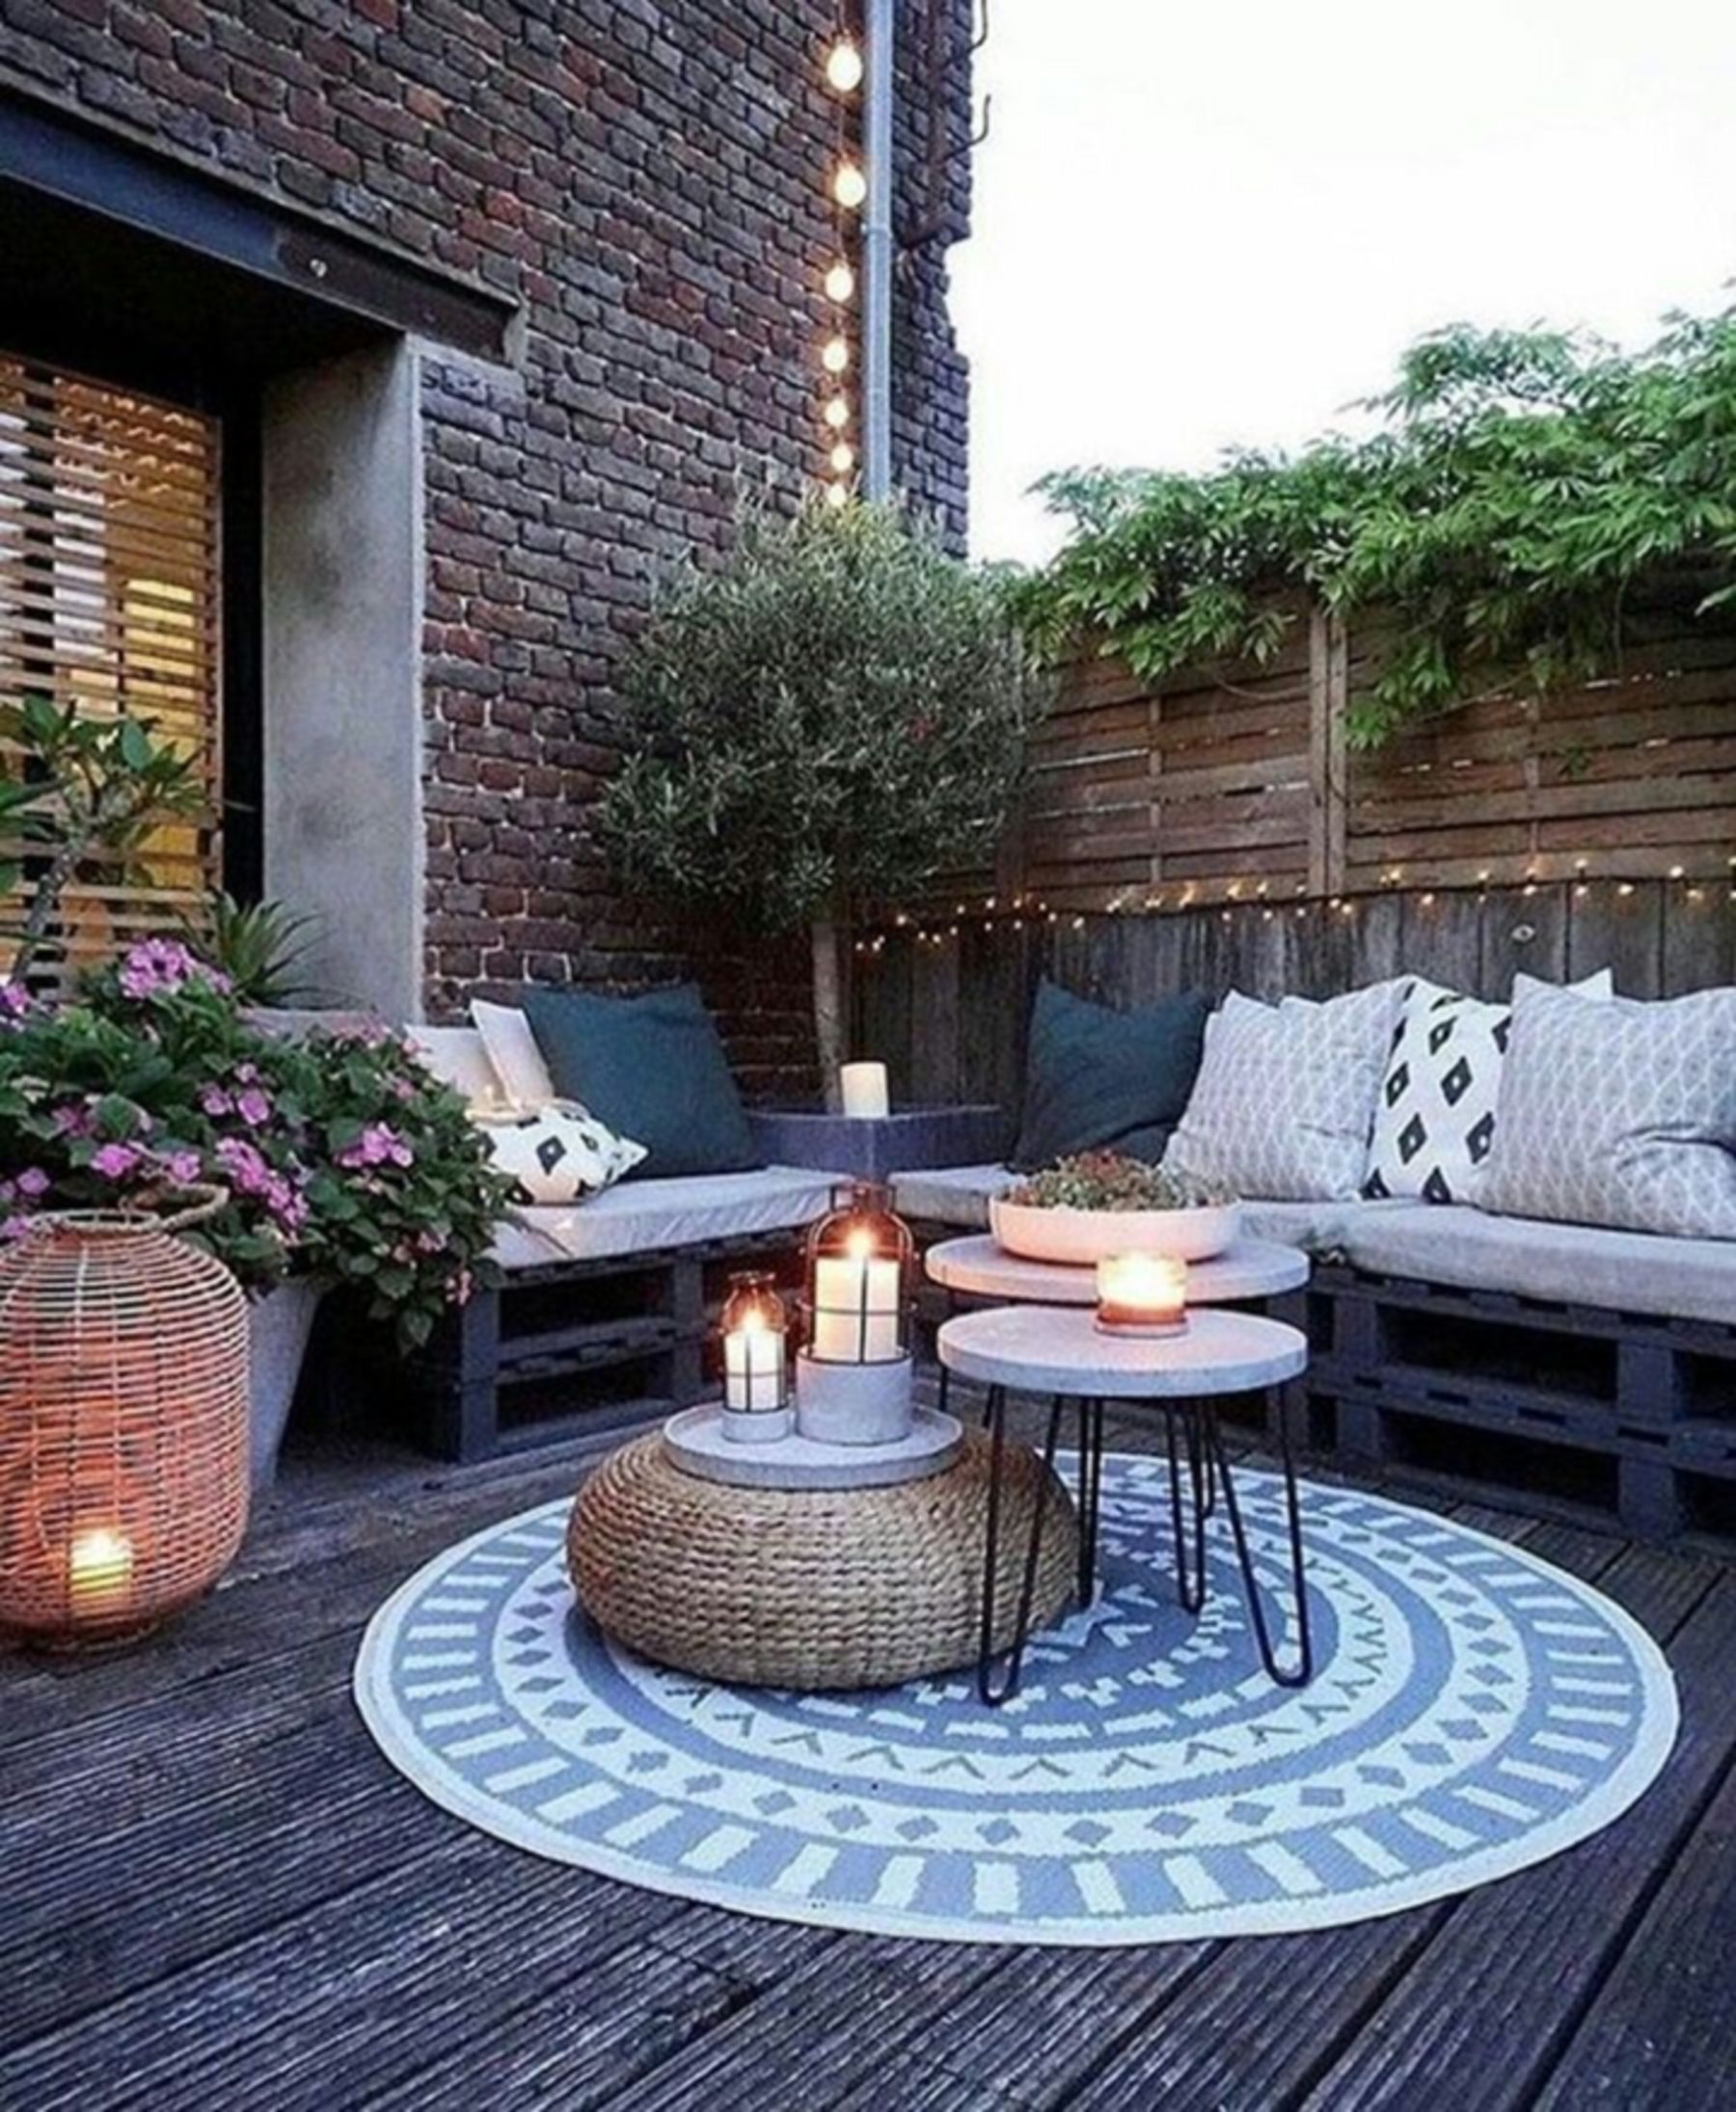 Top 12 Stunning Outdoor Living Room Design Ideas That Will Make Your Guest Cozy images